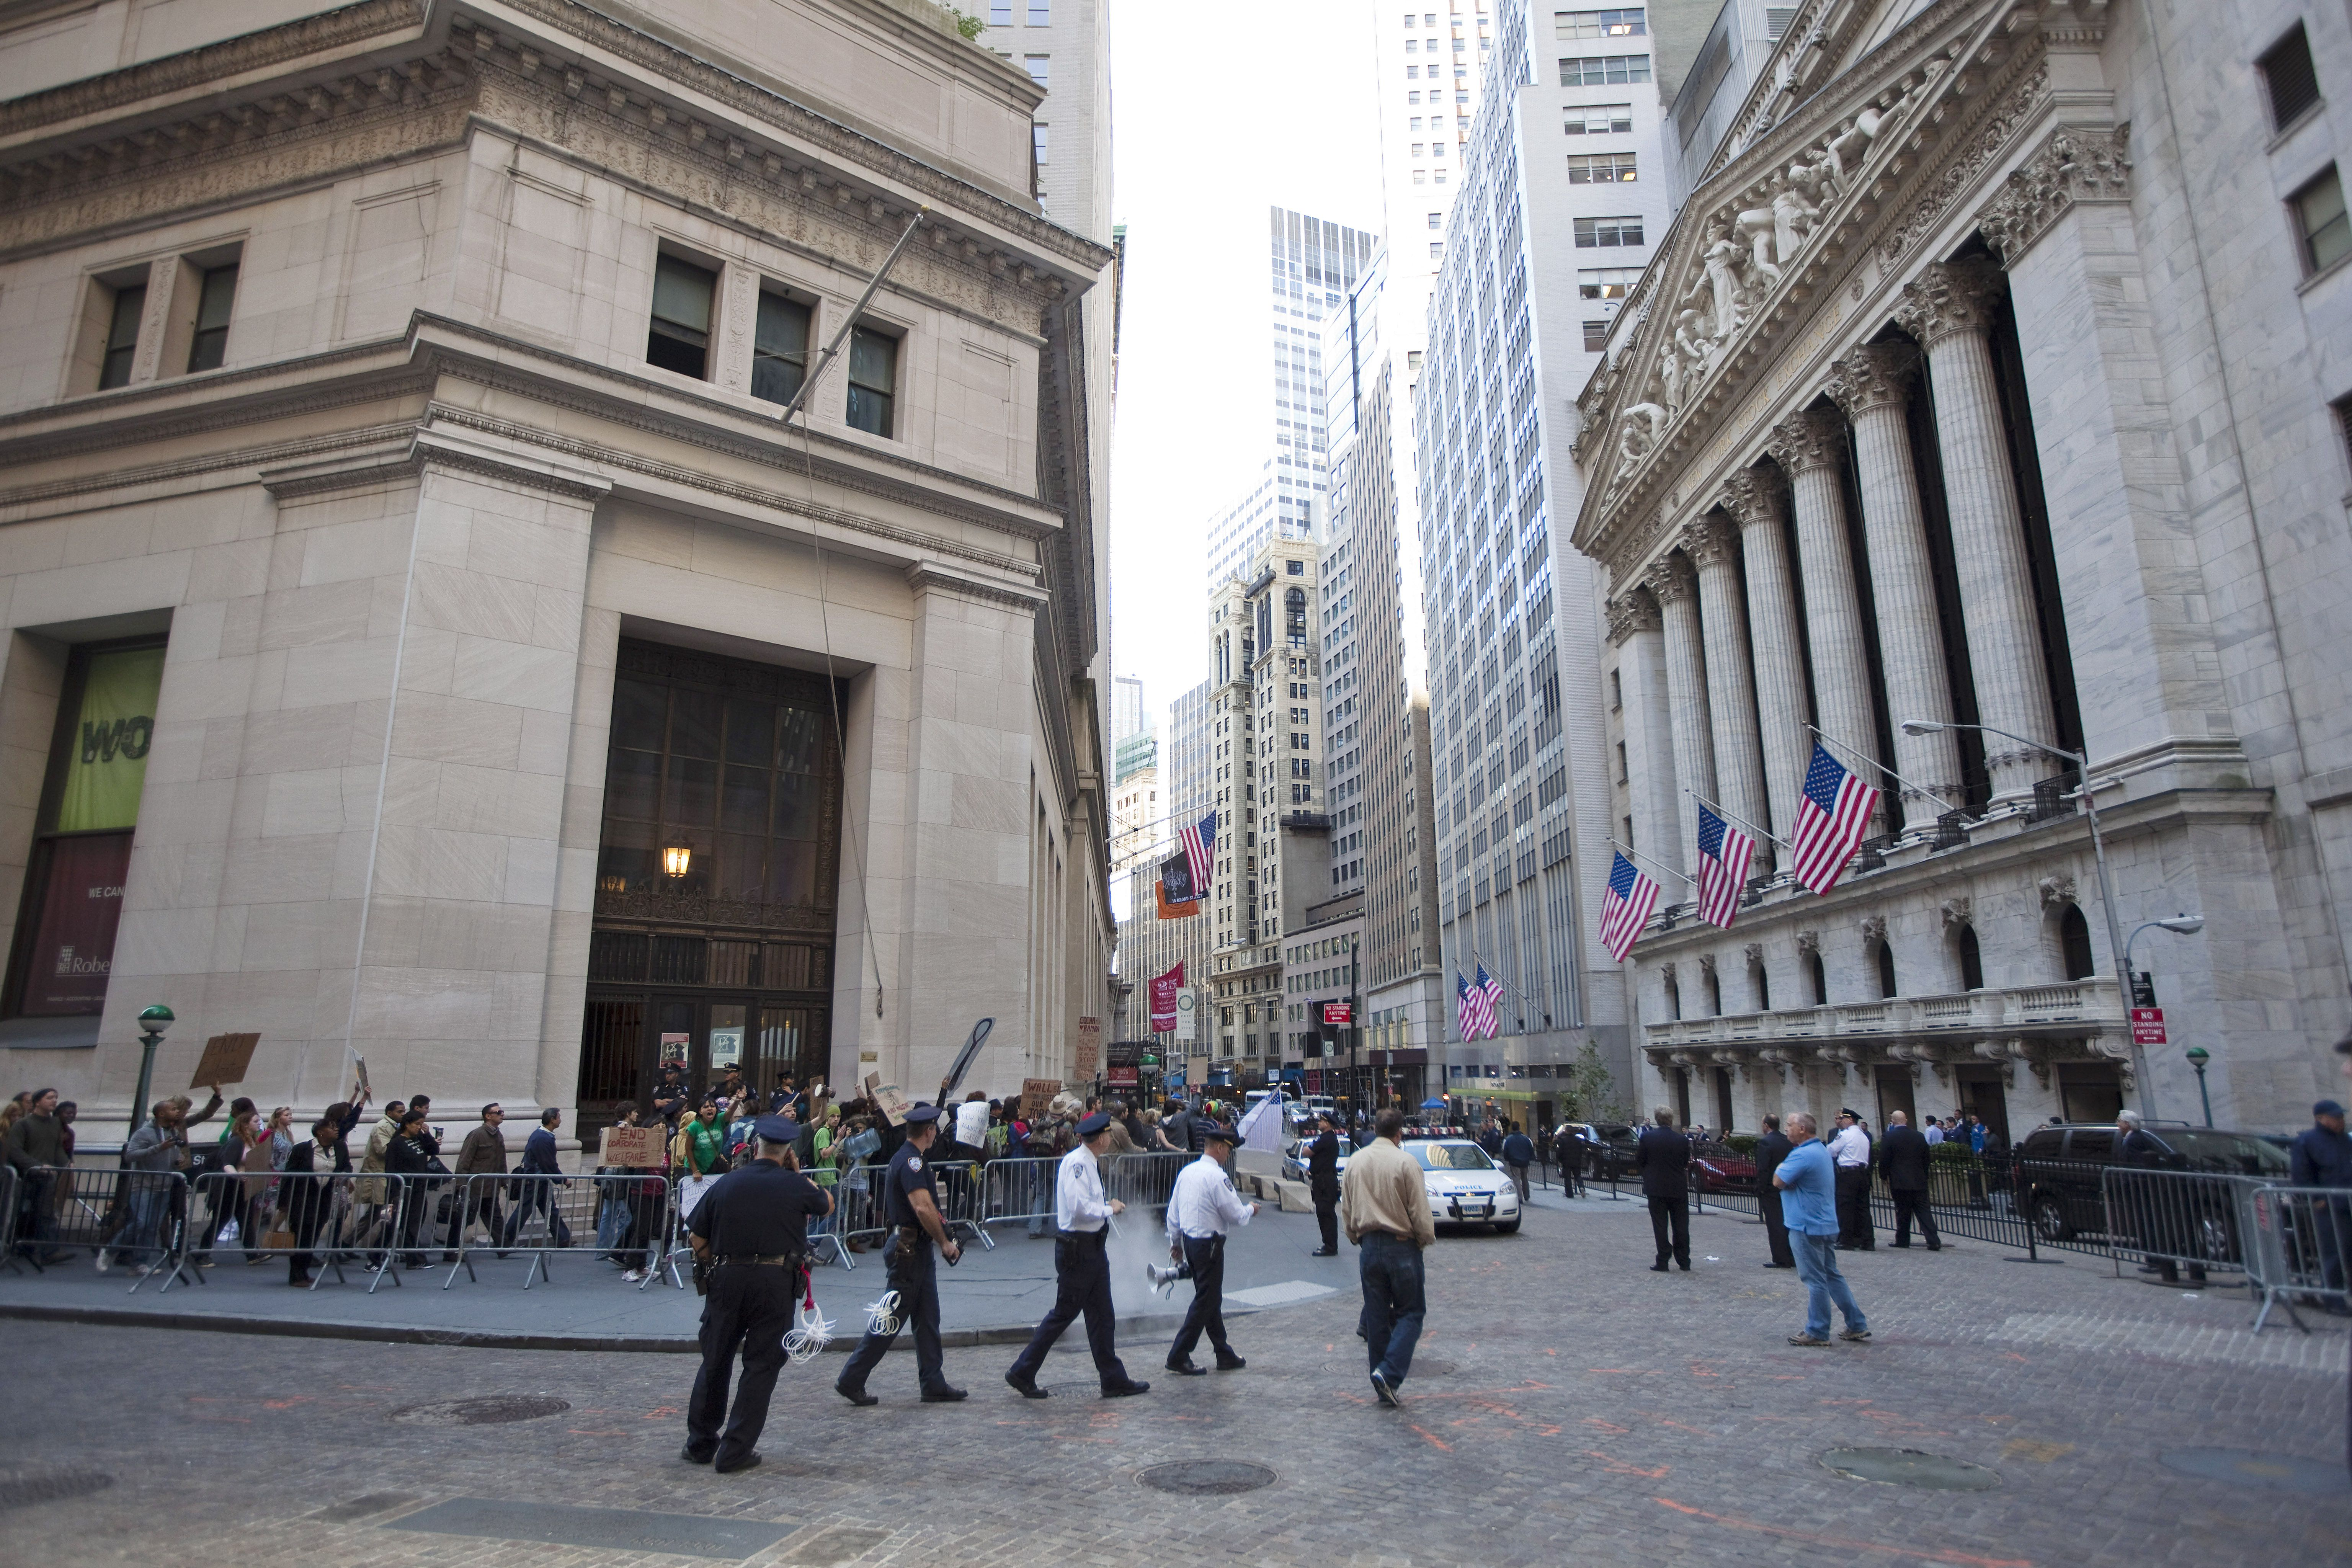 The historic intersection of Broad Street and Wall Street in New York